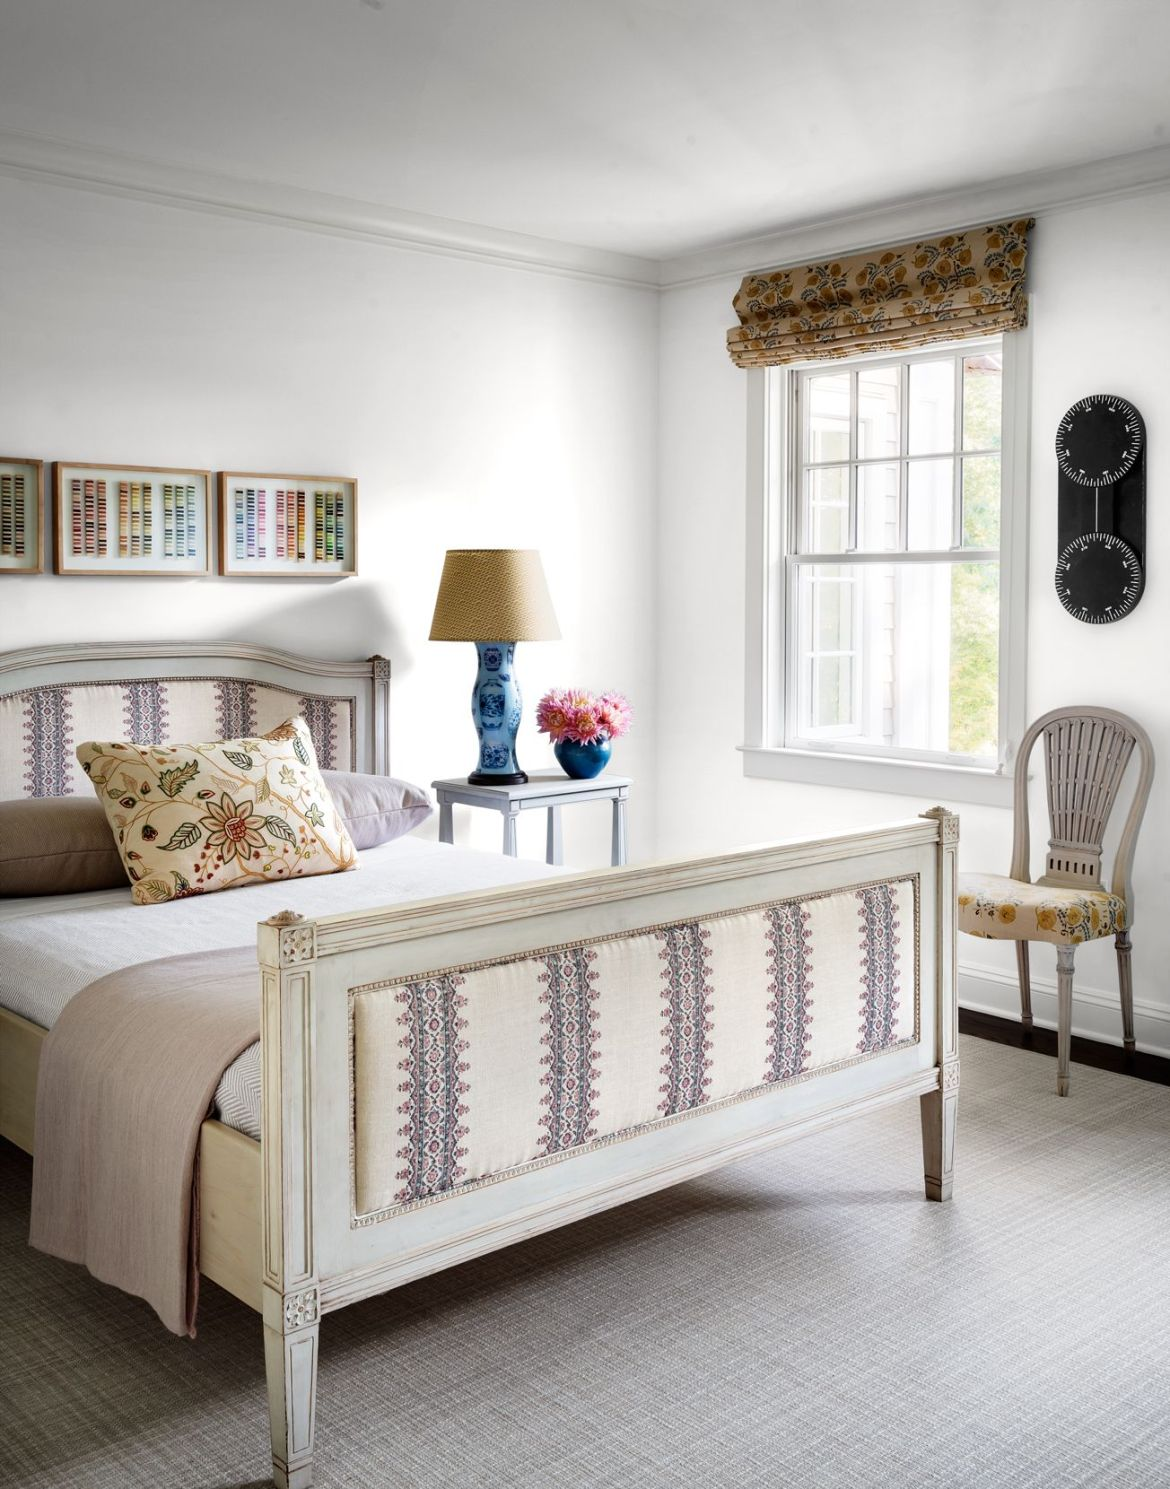 james huniford white bedroom with bed with embroidered headboard and footboard